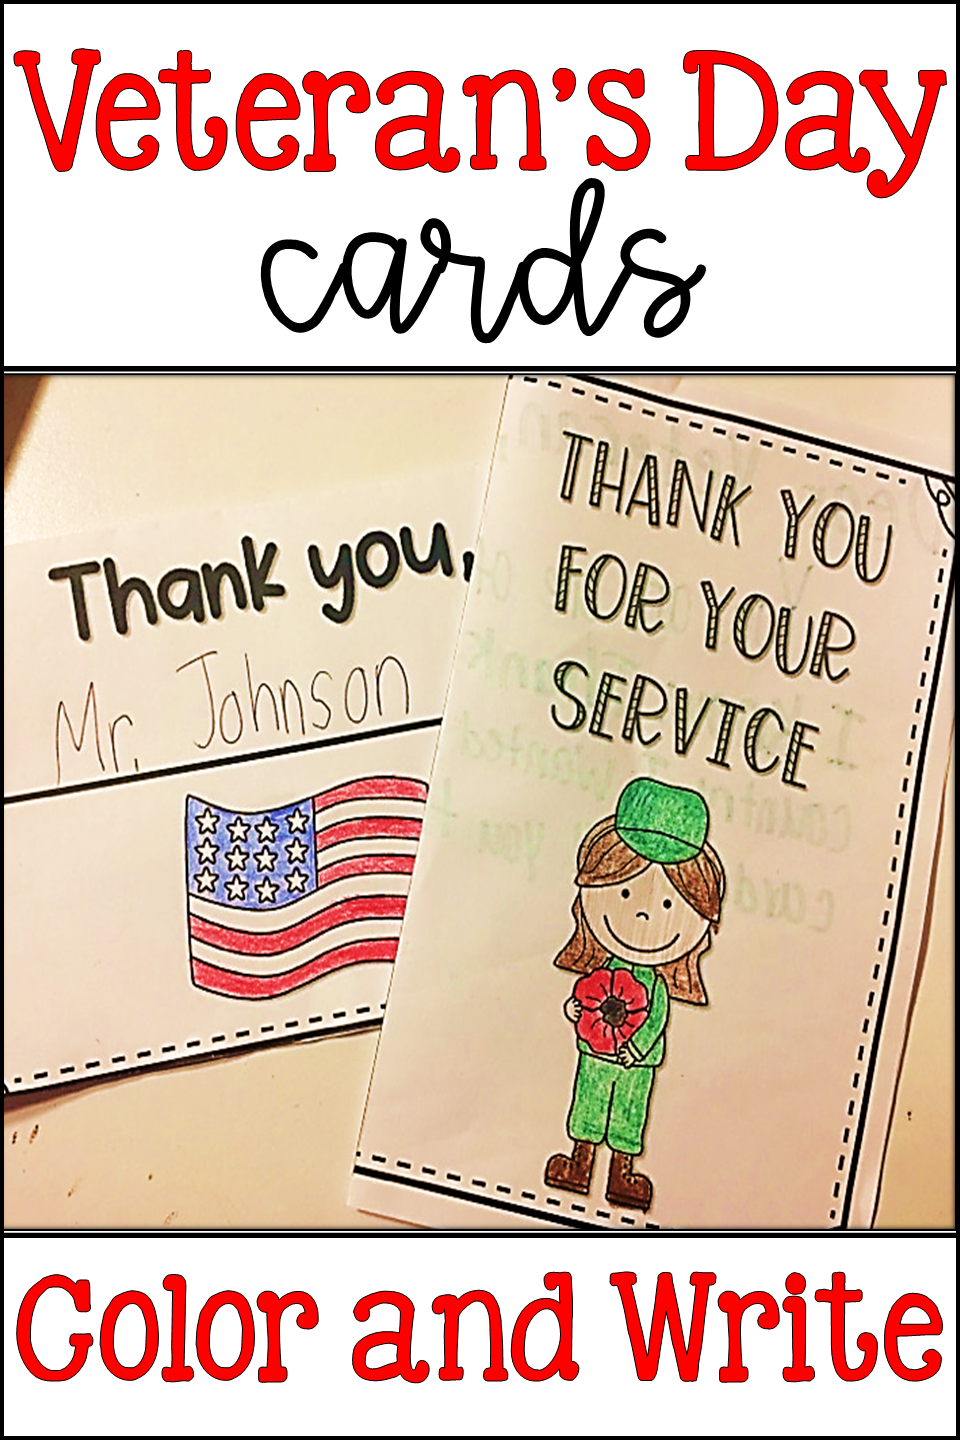 veteran's day cards  thank you cards  veteran's day